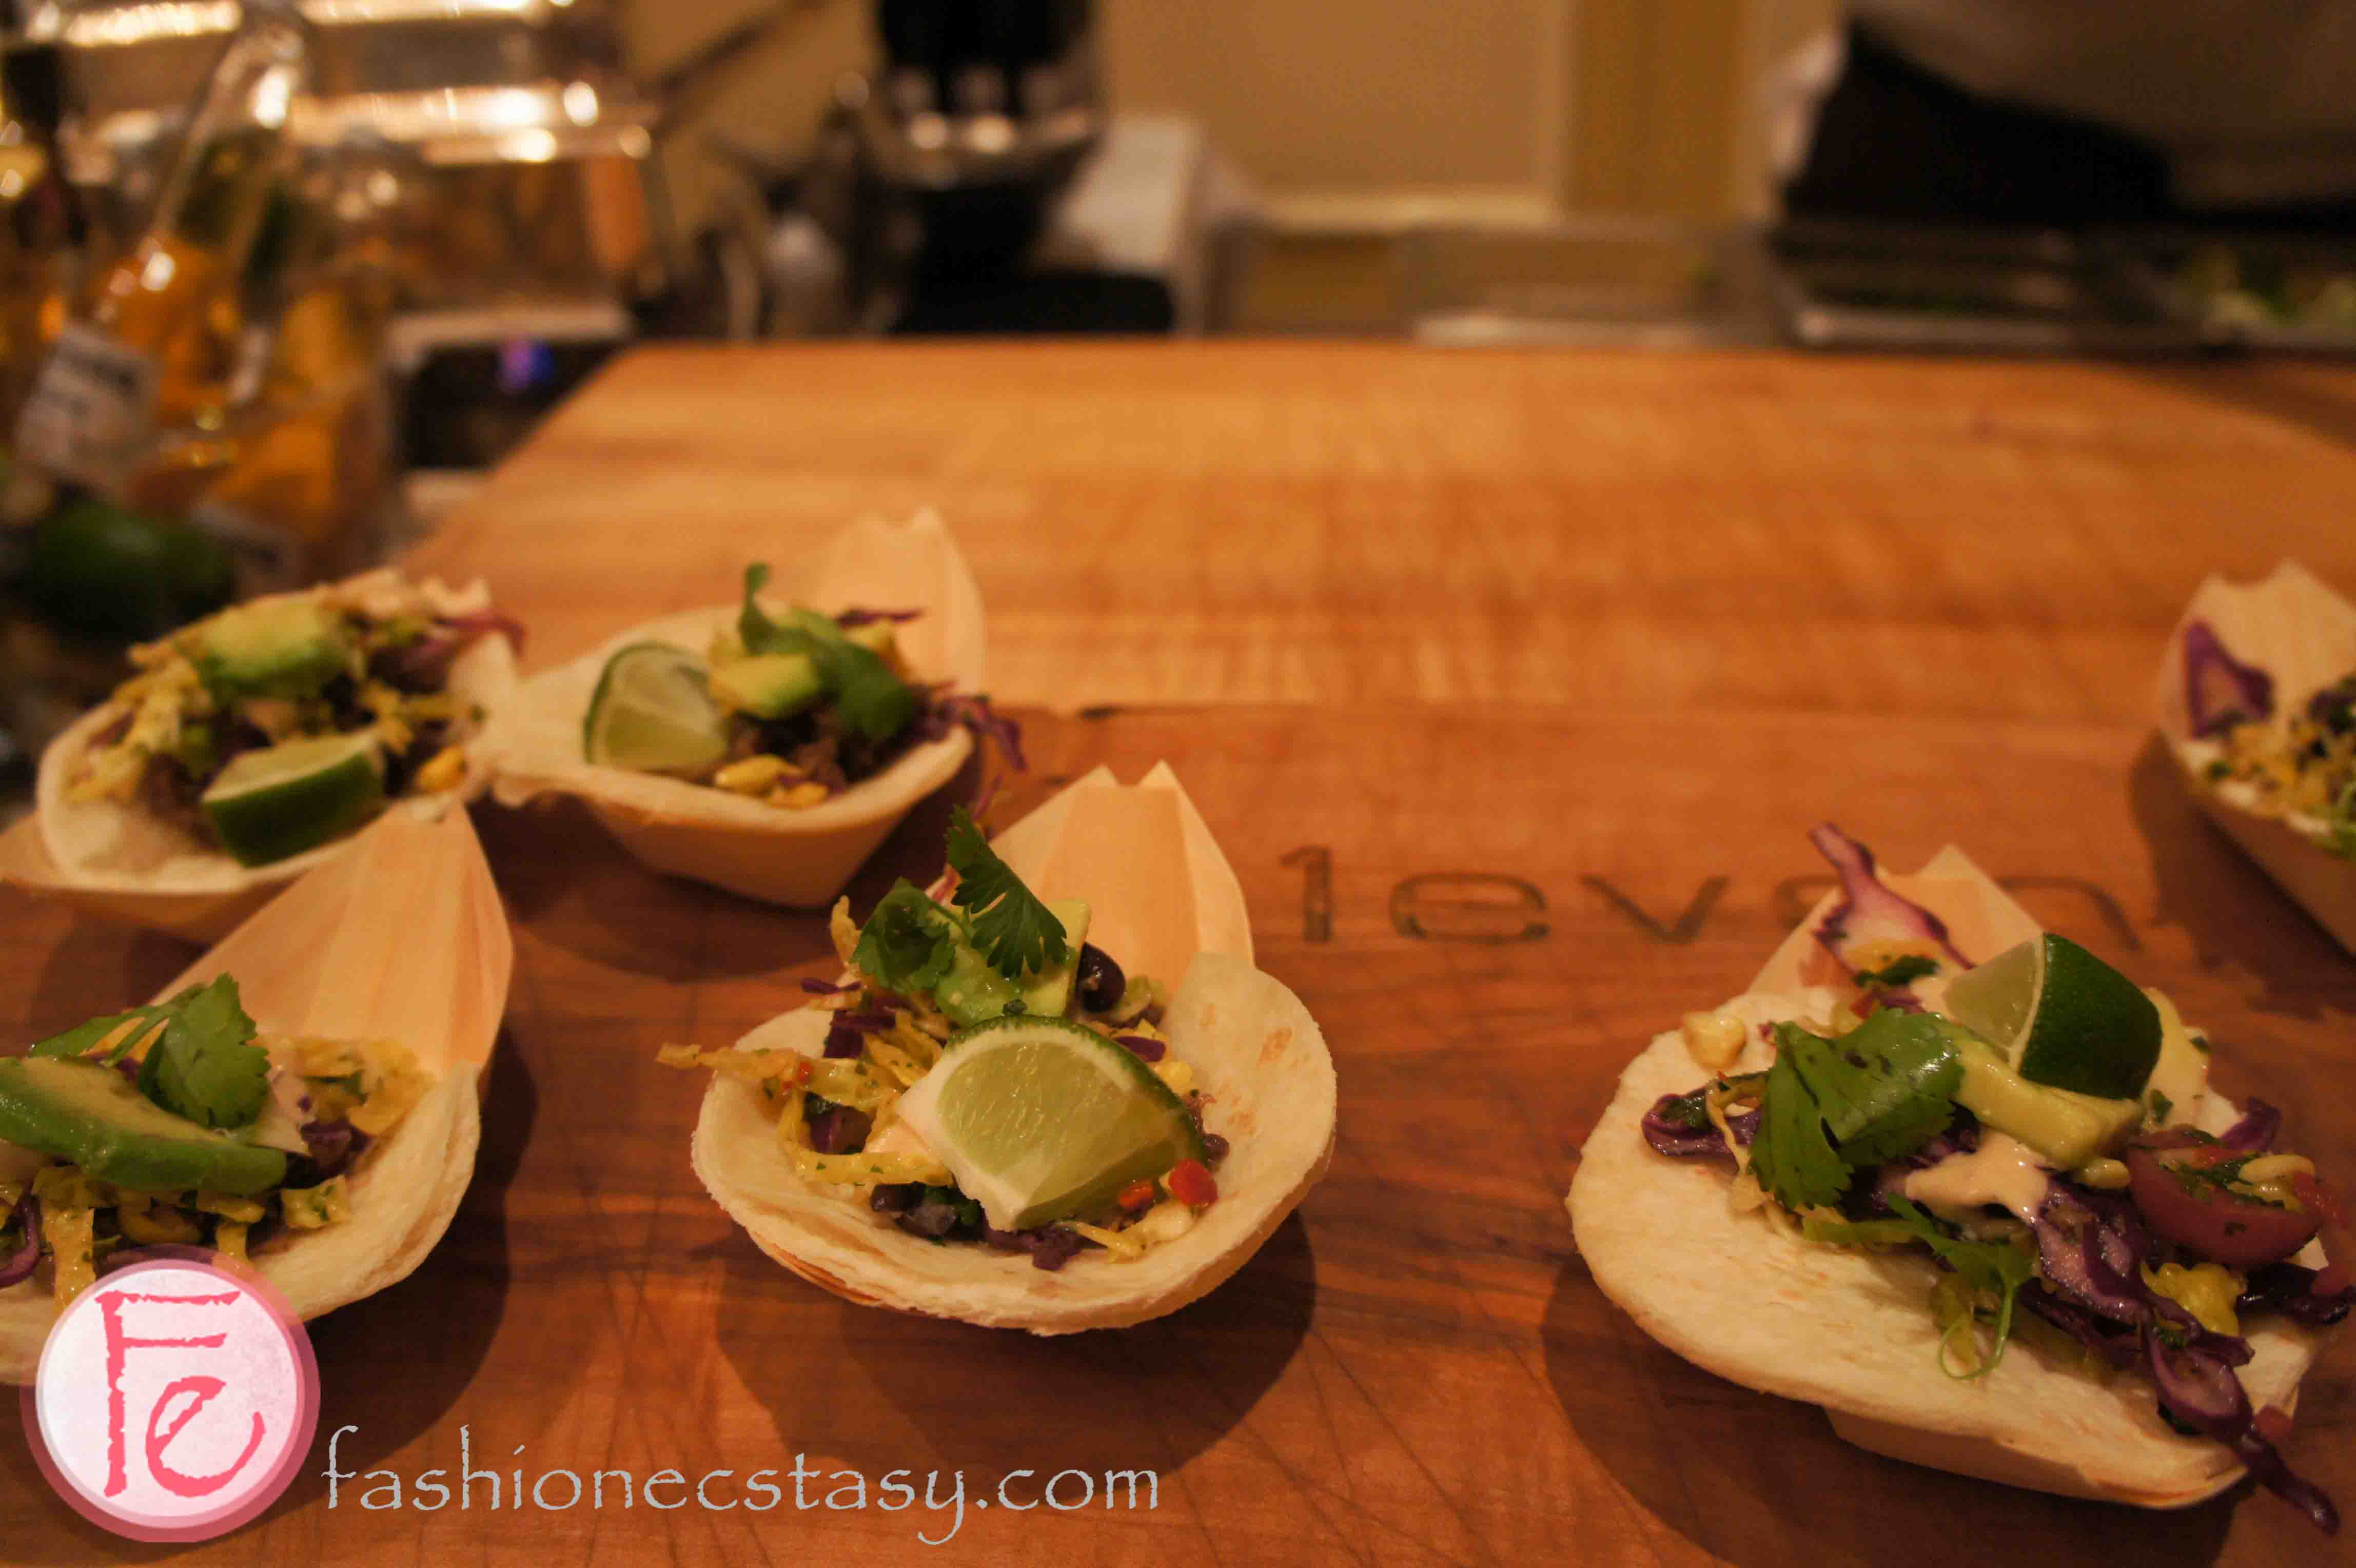 braised lamb shoulder taco prepared with mesquite aioli, advocado, and cilantro by executive Chef Graham Pelley, e11even